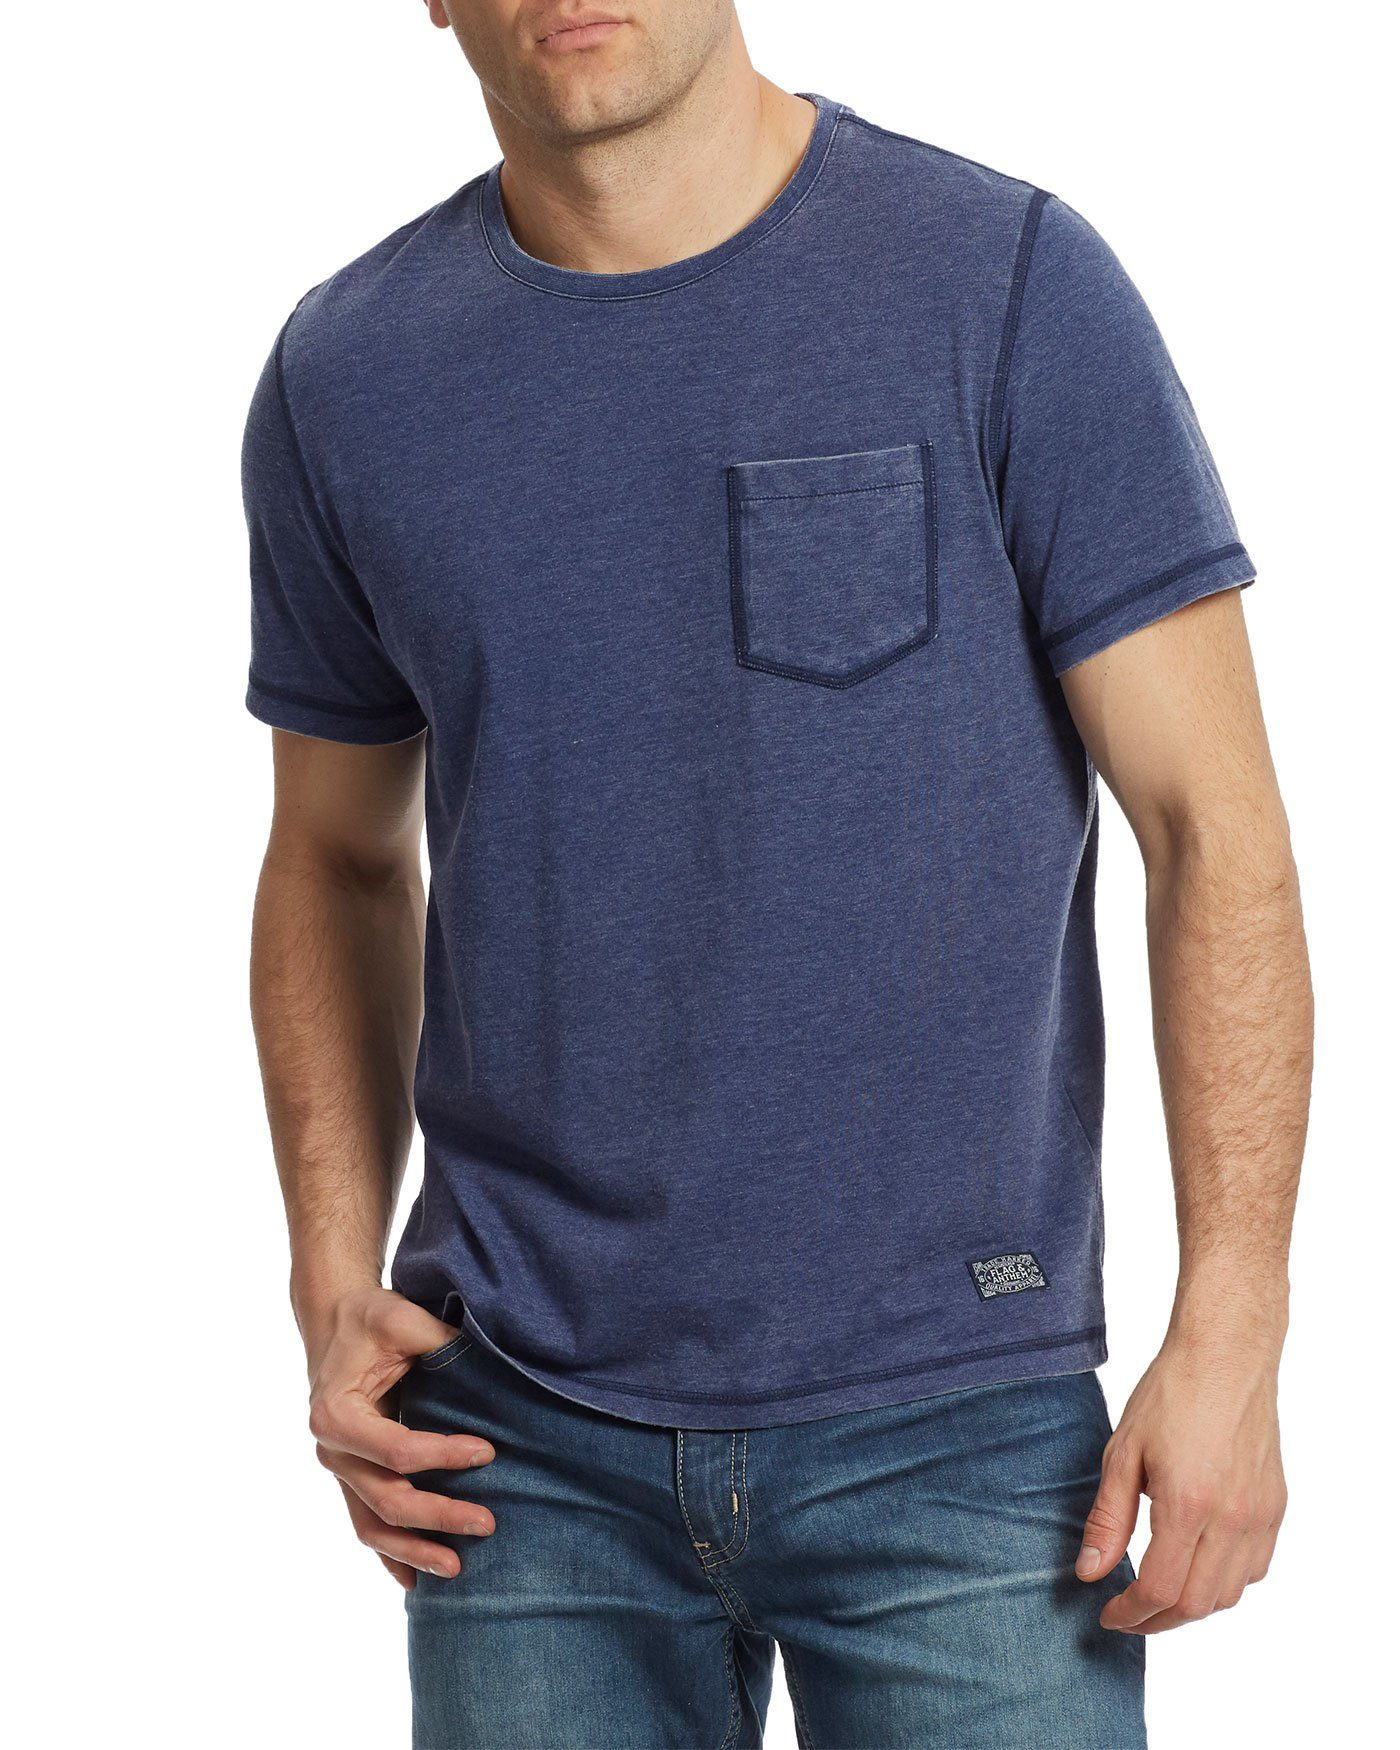 NORTHFIELD BURNOUT TEE - NAVY